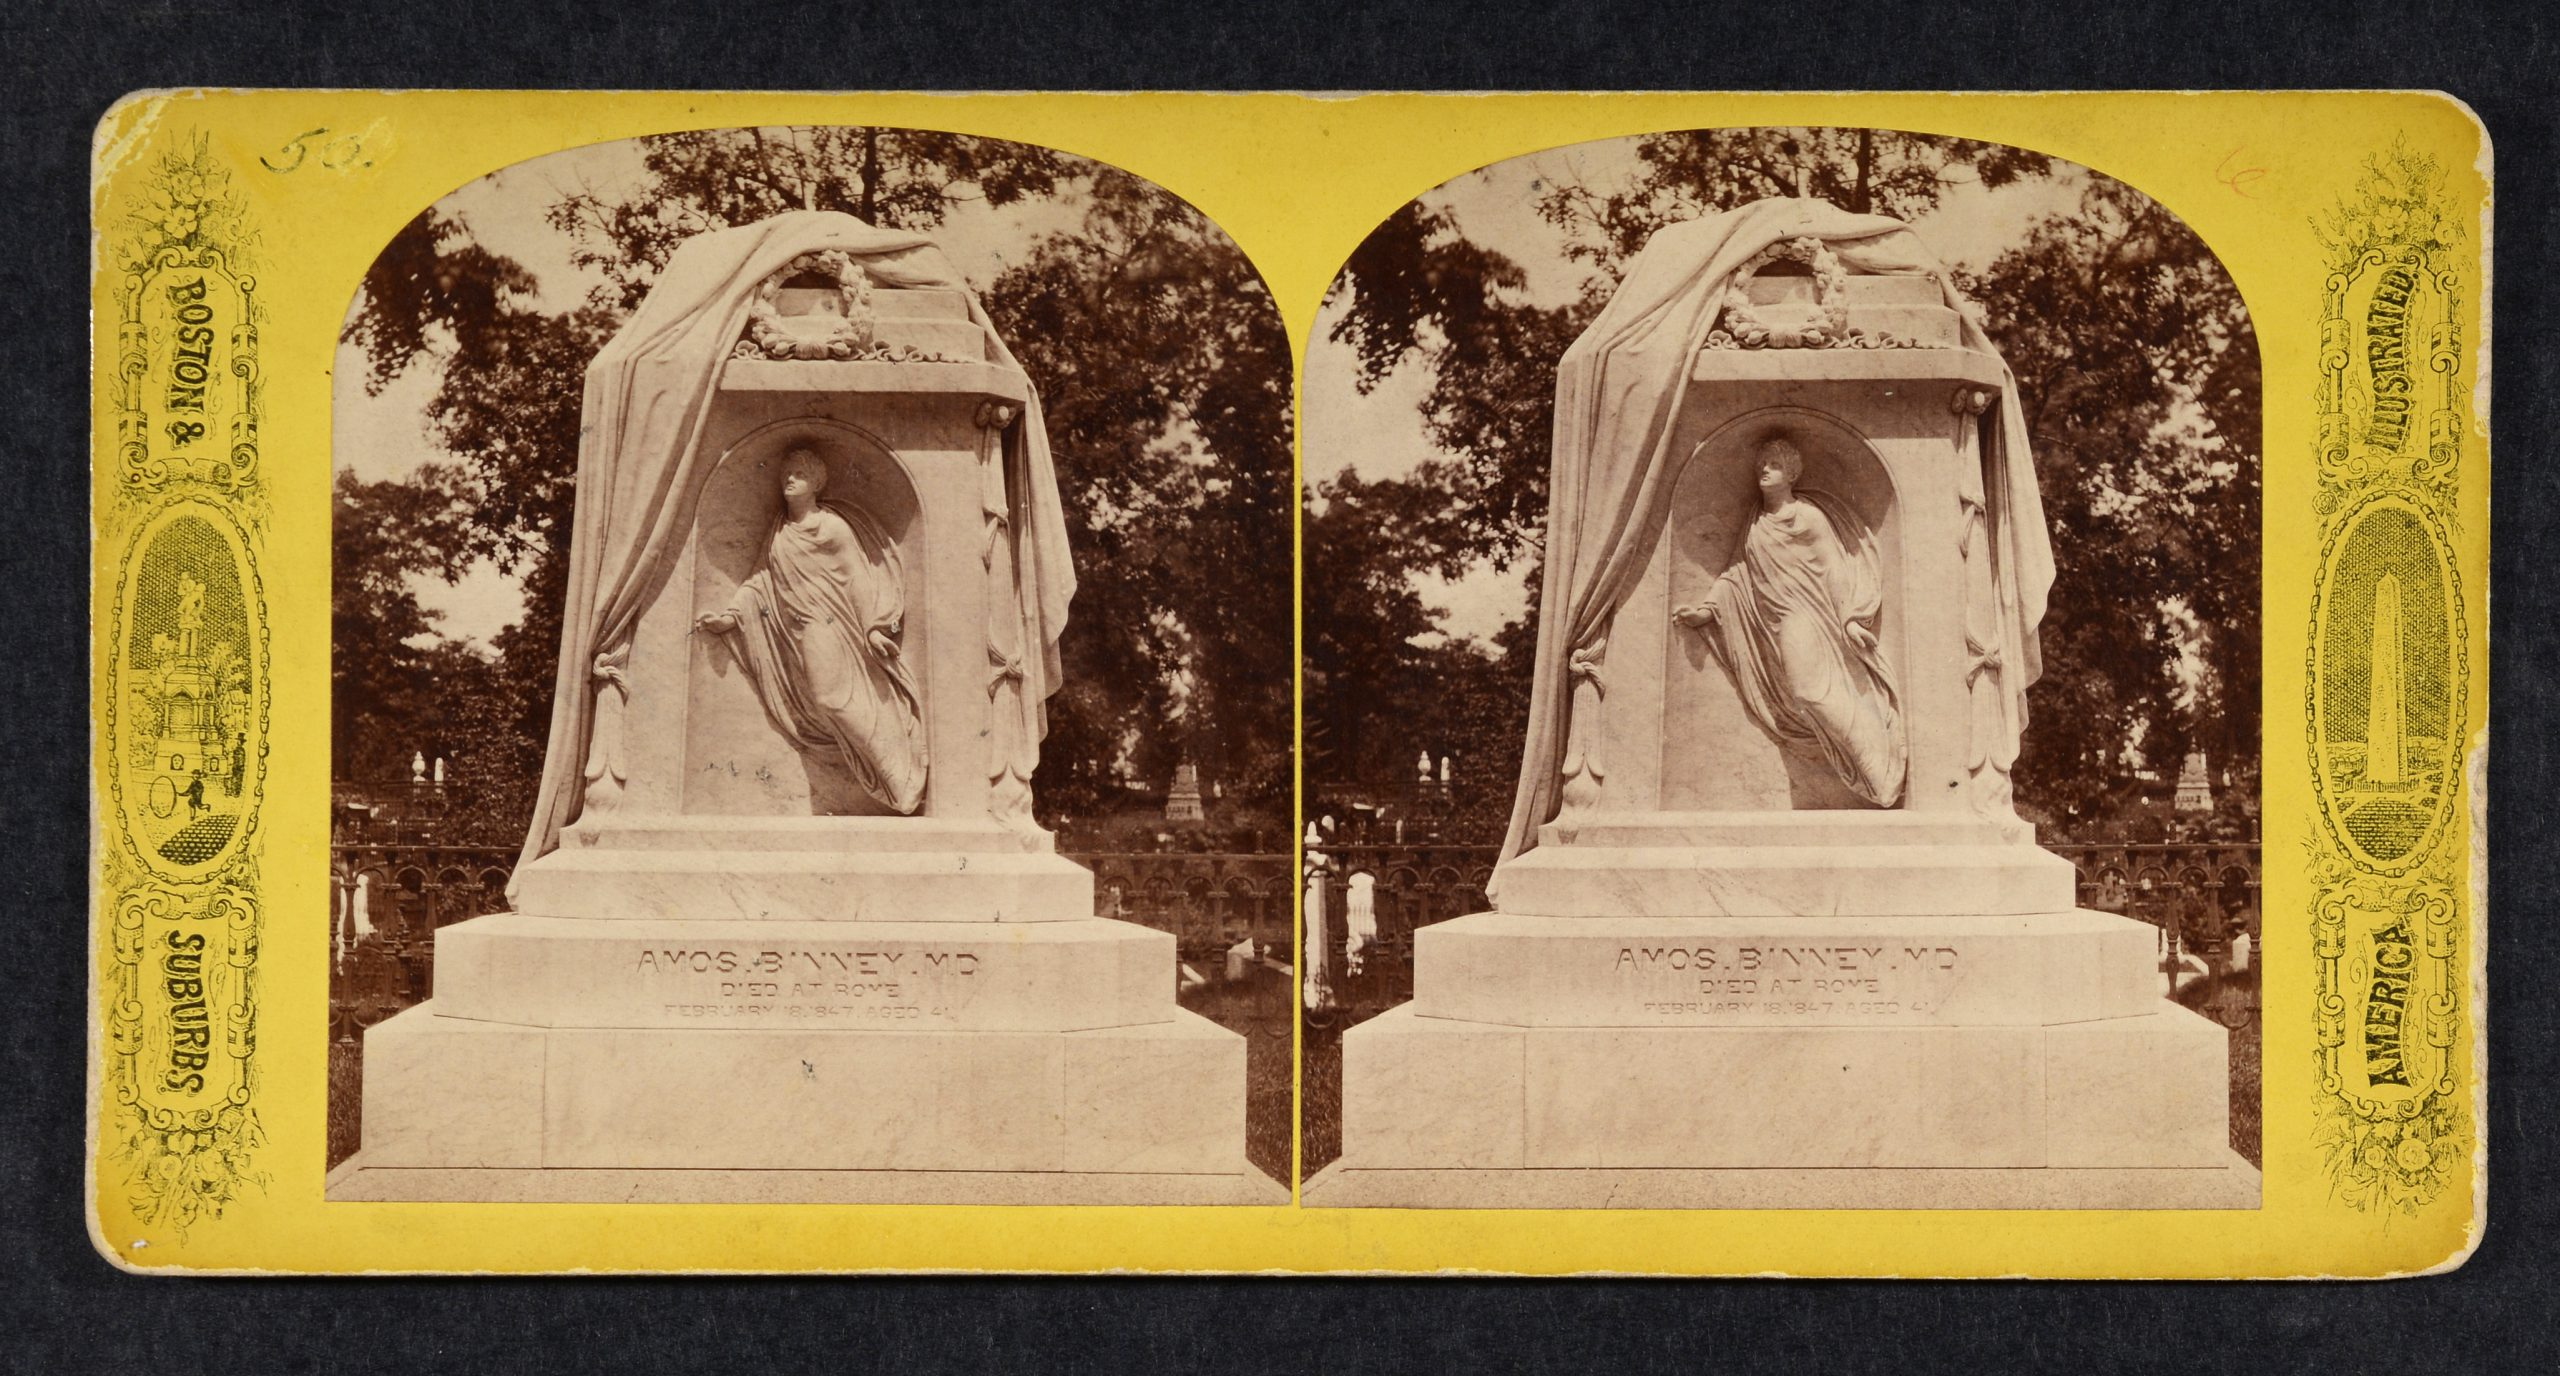 Stereoview of large marble monument, male figure in niche with drapery wreath above.